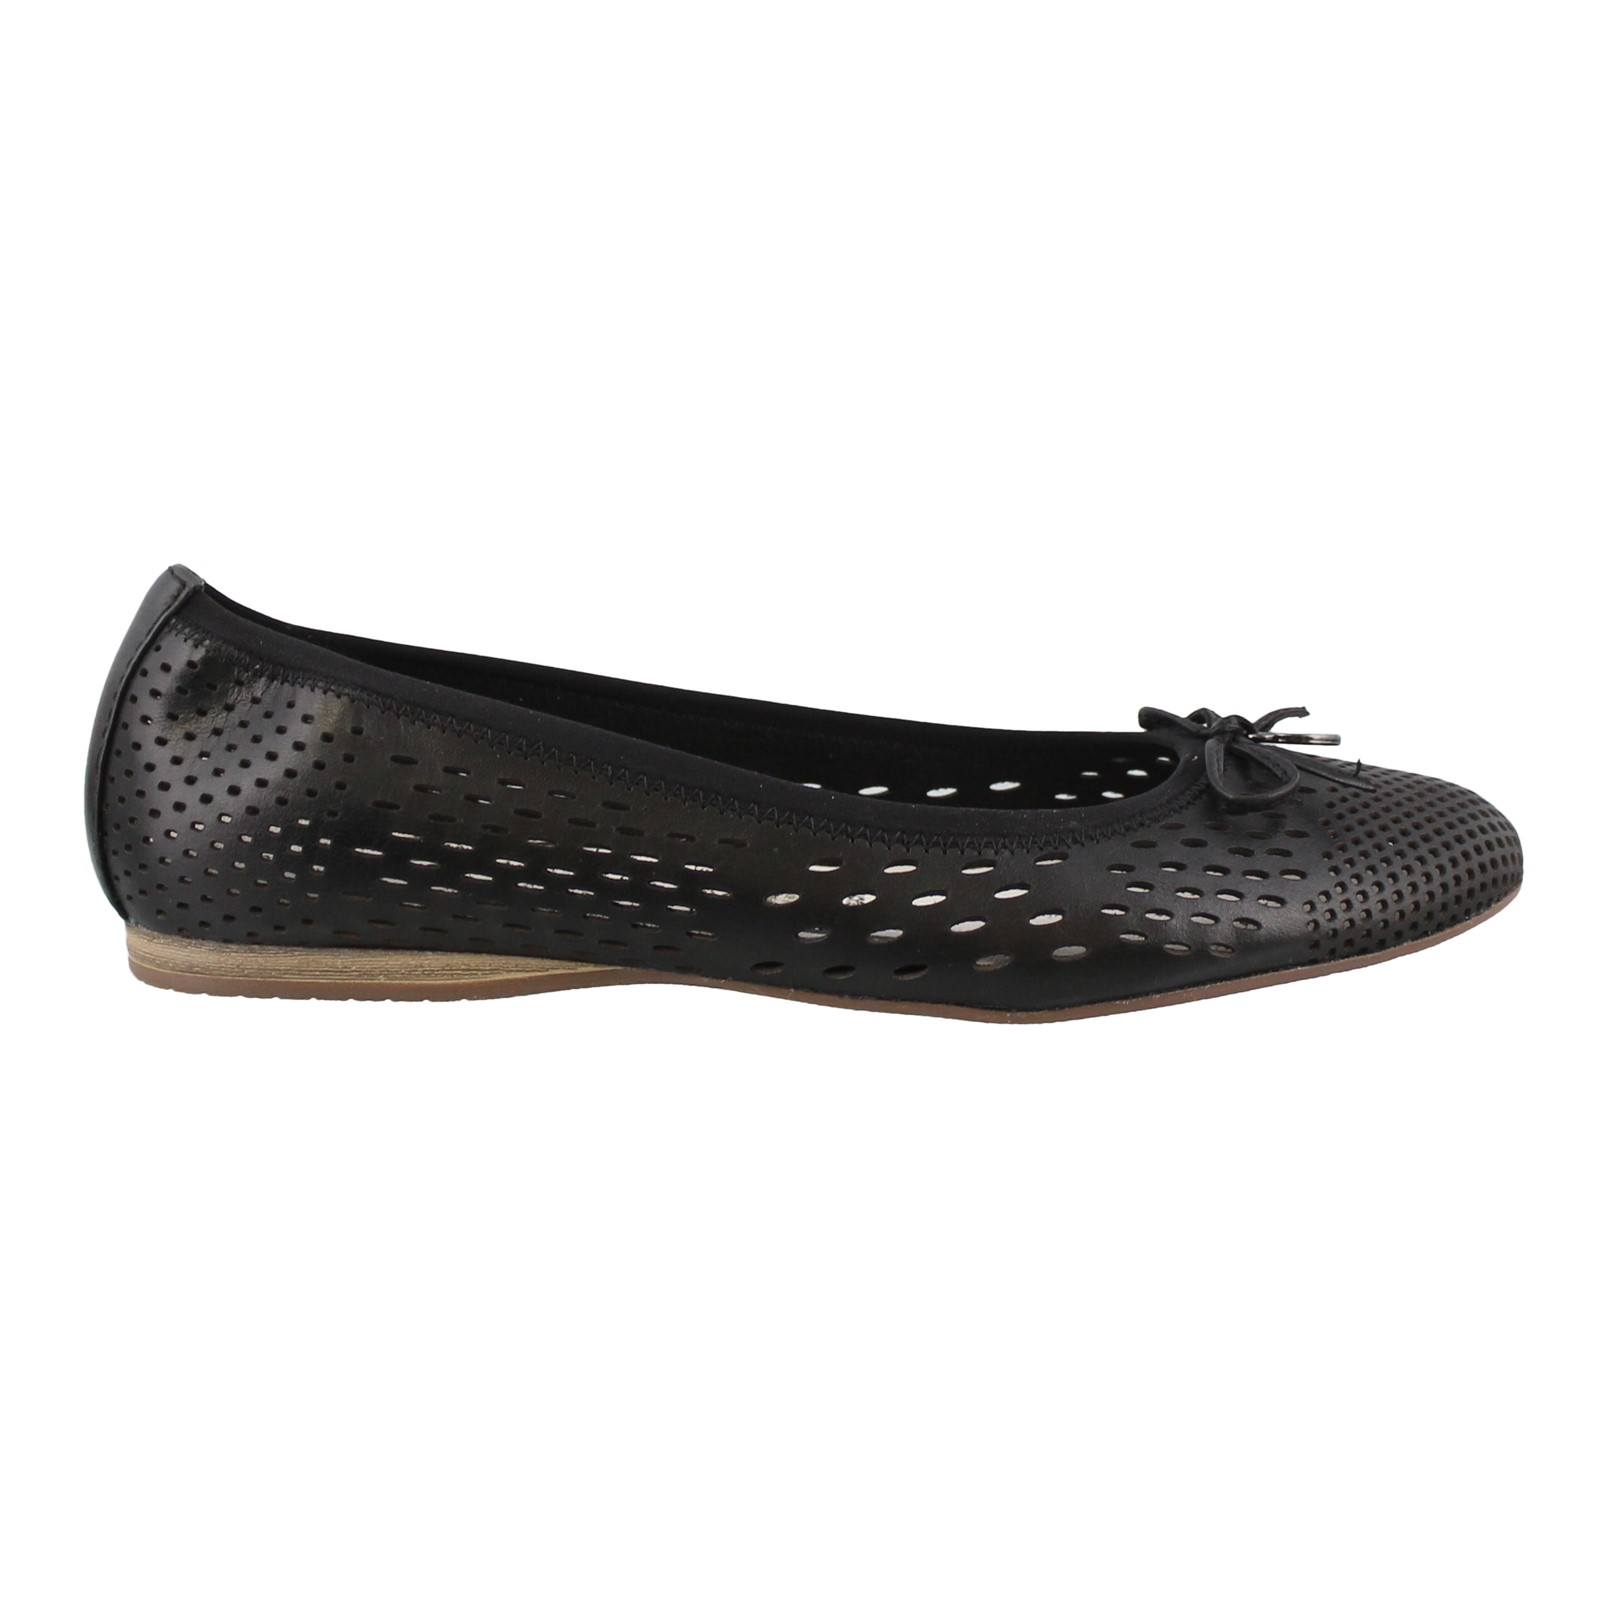 Women's Tamaris, Alena 6 Slip on Flats